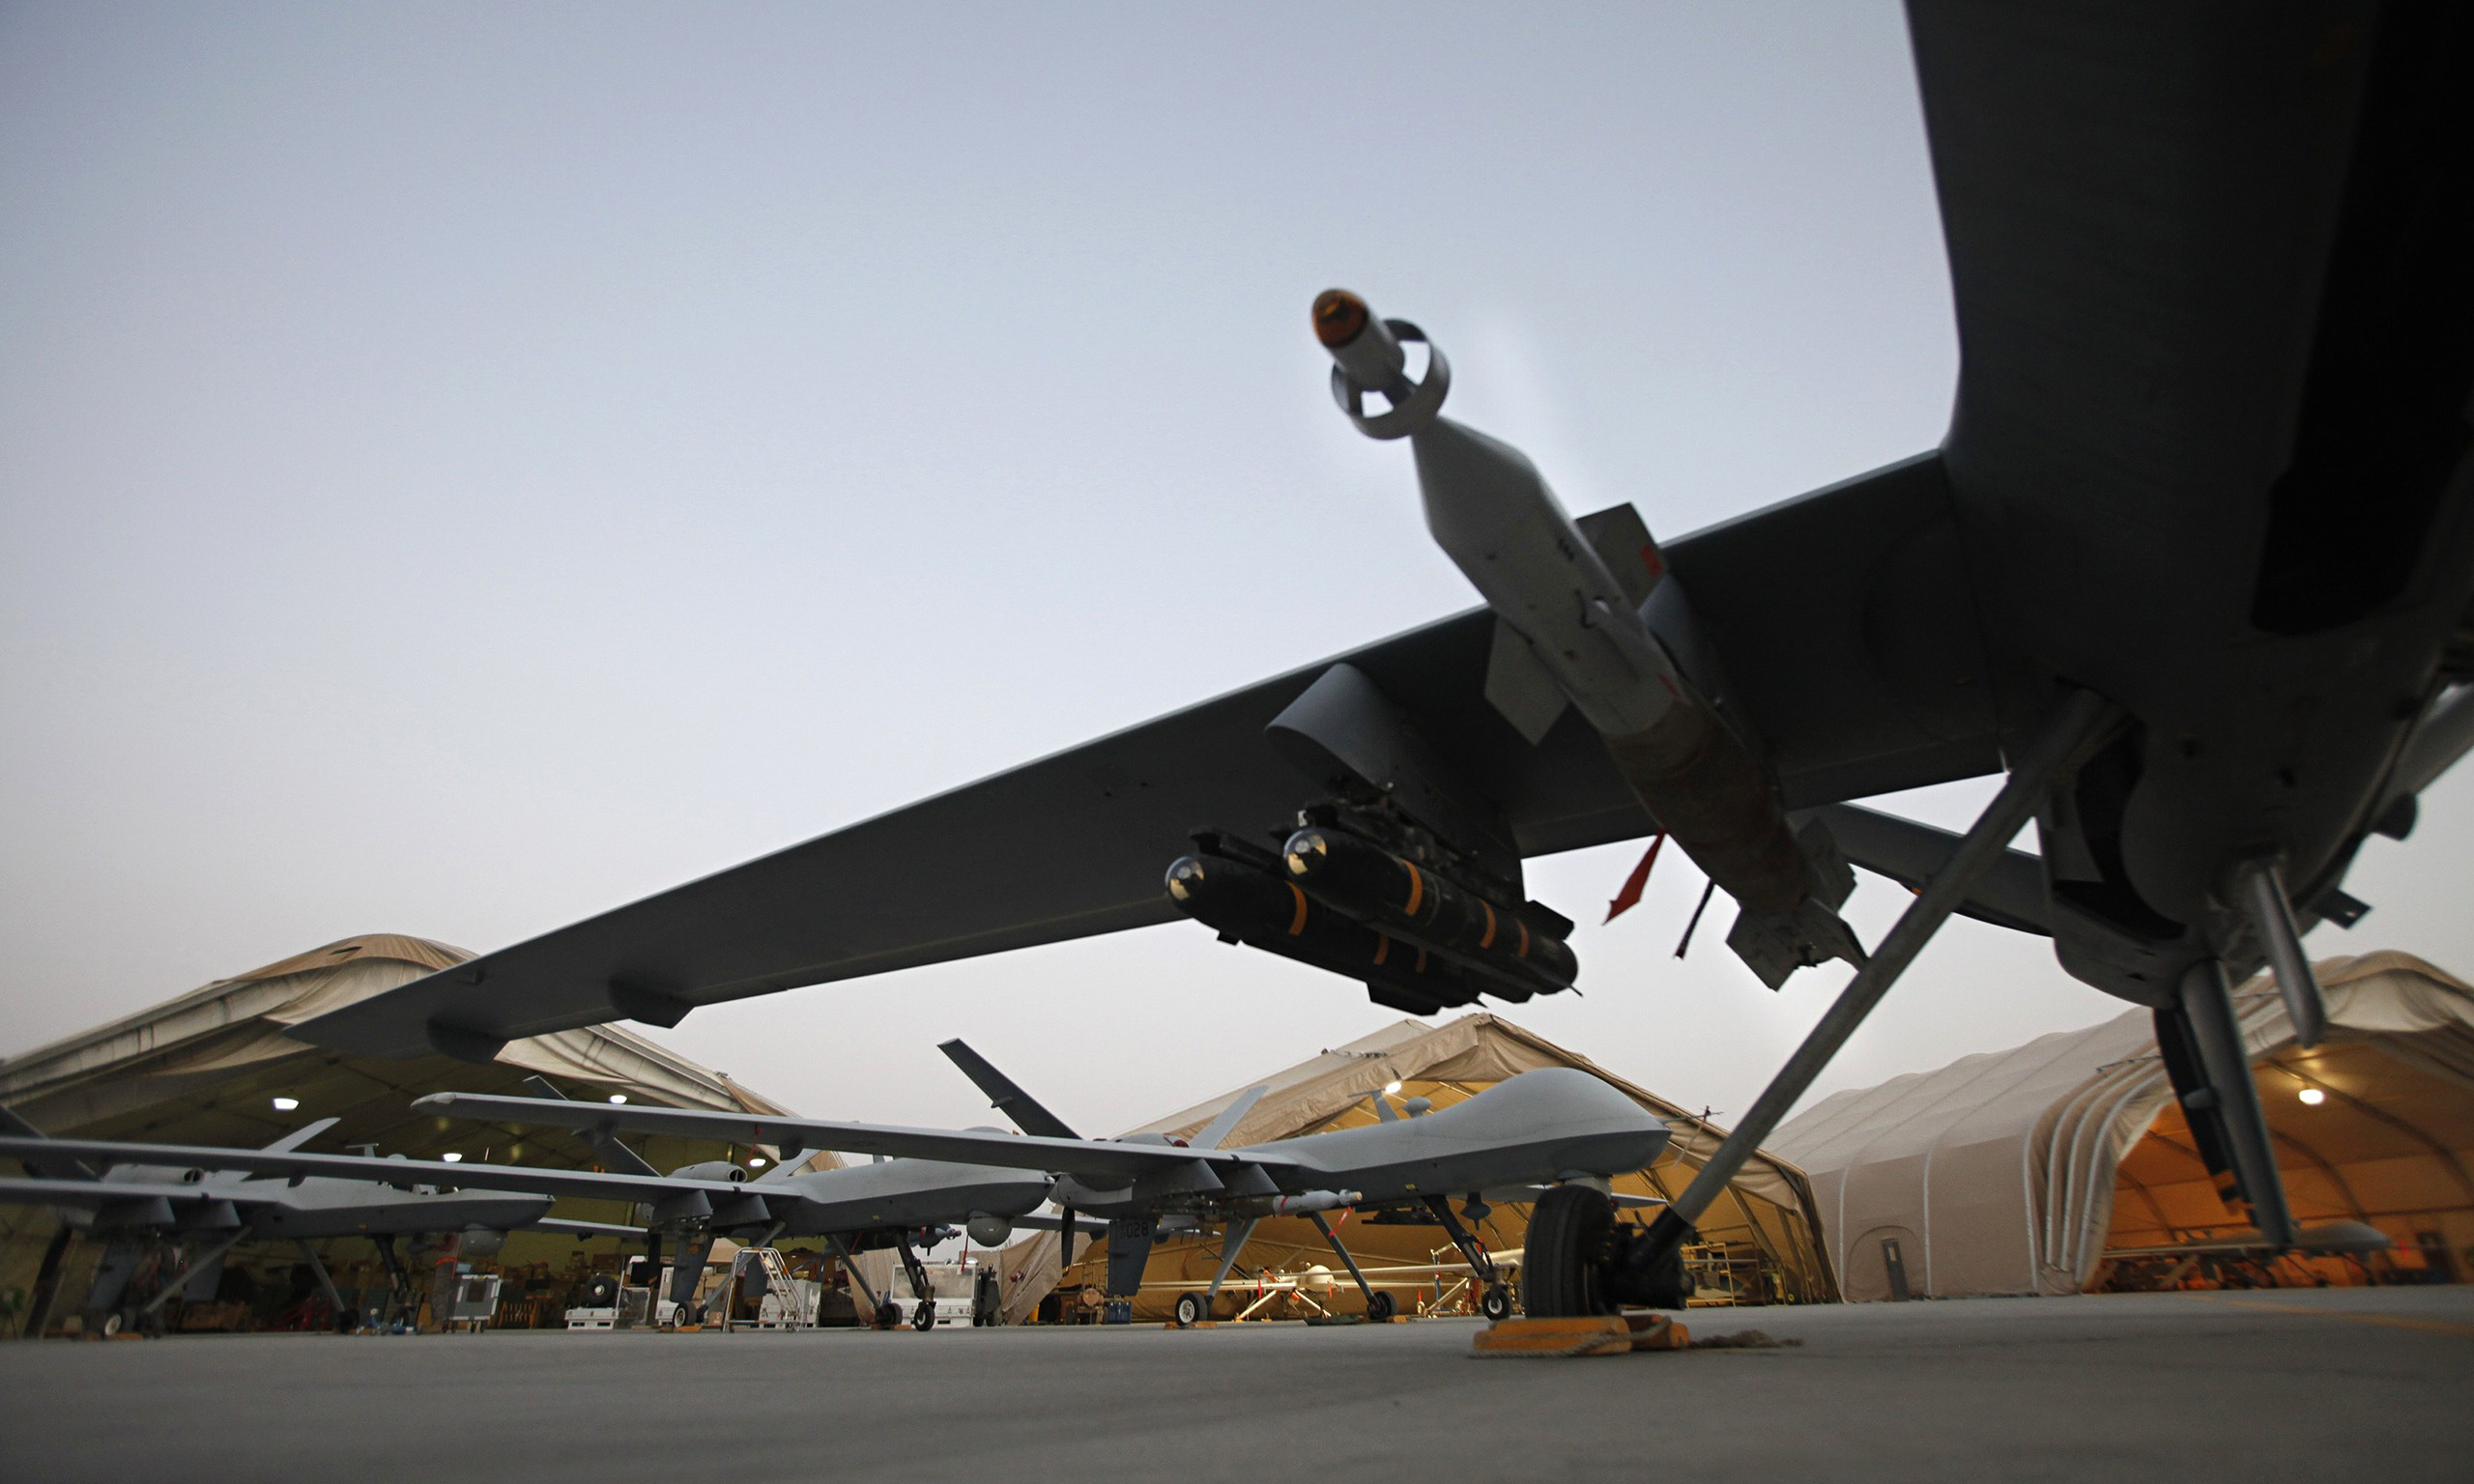 Diplomat's Drone Article Under Fire From Human Rights